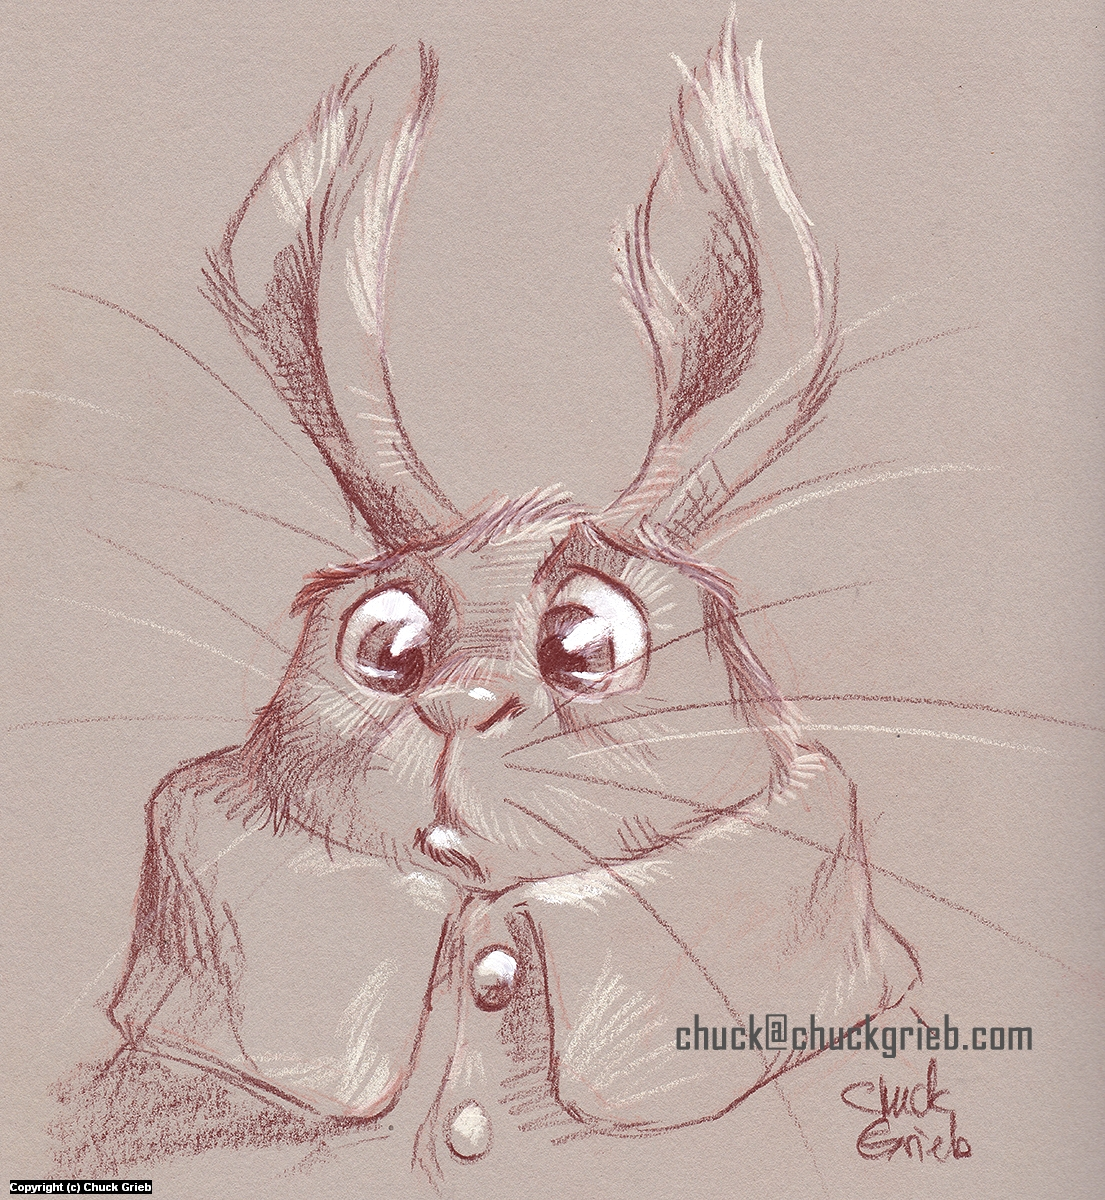 Little Bunny Artwork by Chuck Grieb